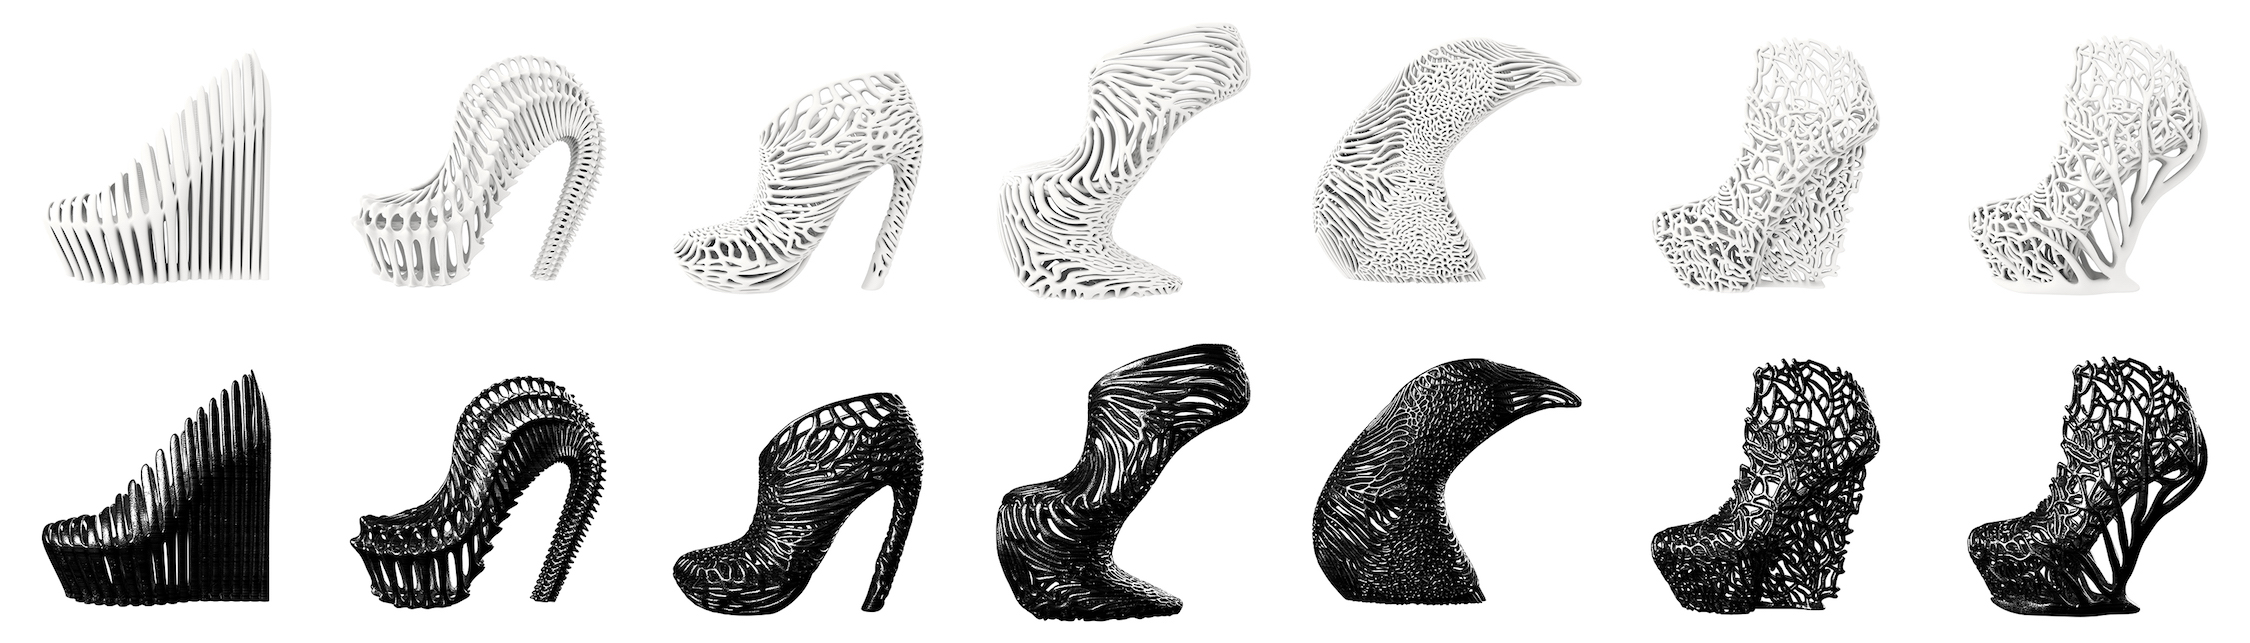 an assortment of 3D printed shoes